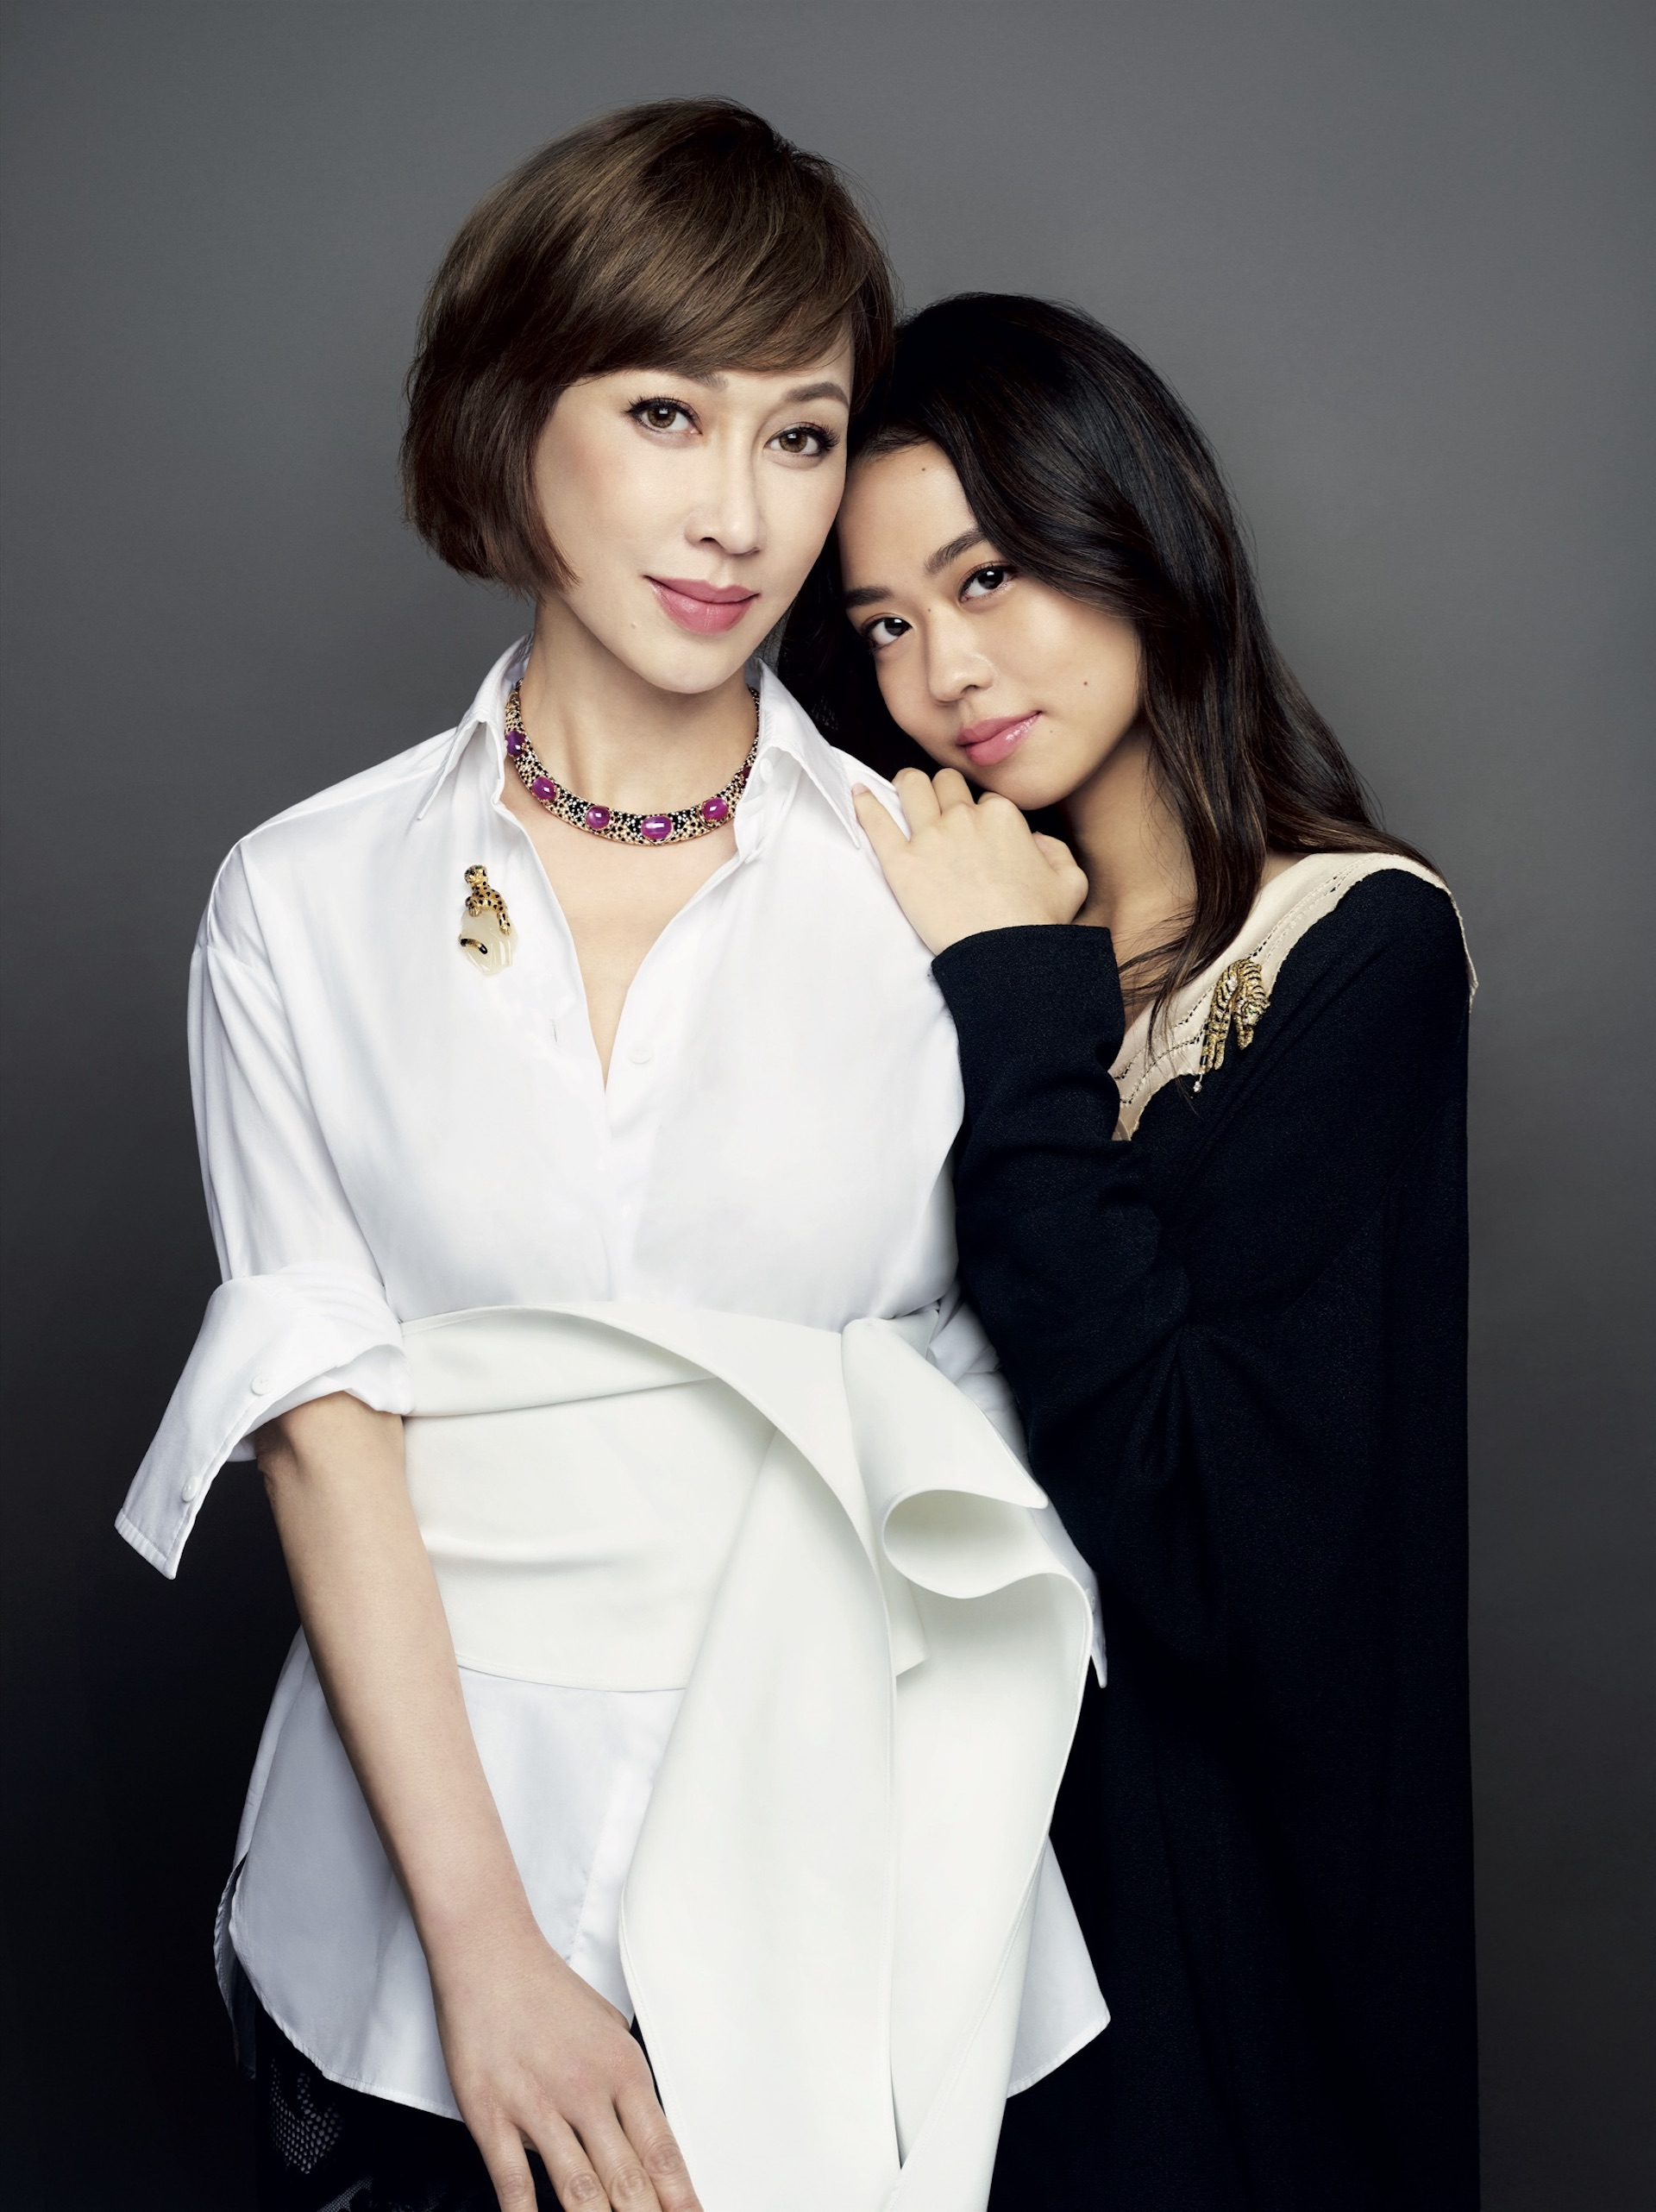 Grace and Coco Chng, the first in Singapore to model Cartier Collection archival pieces, share the same love for jewellery